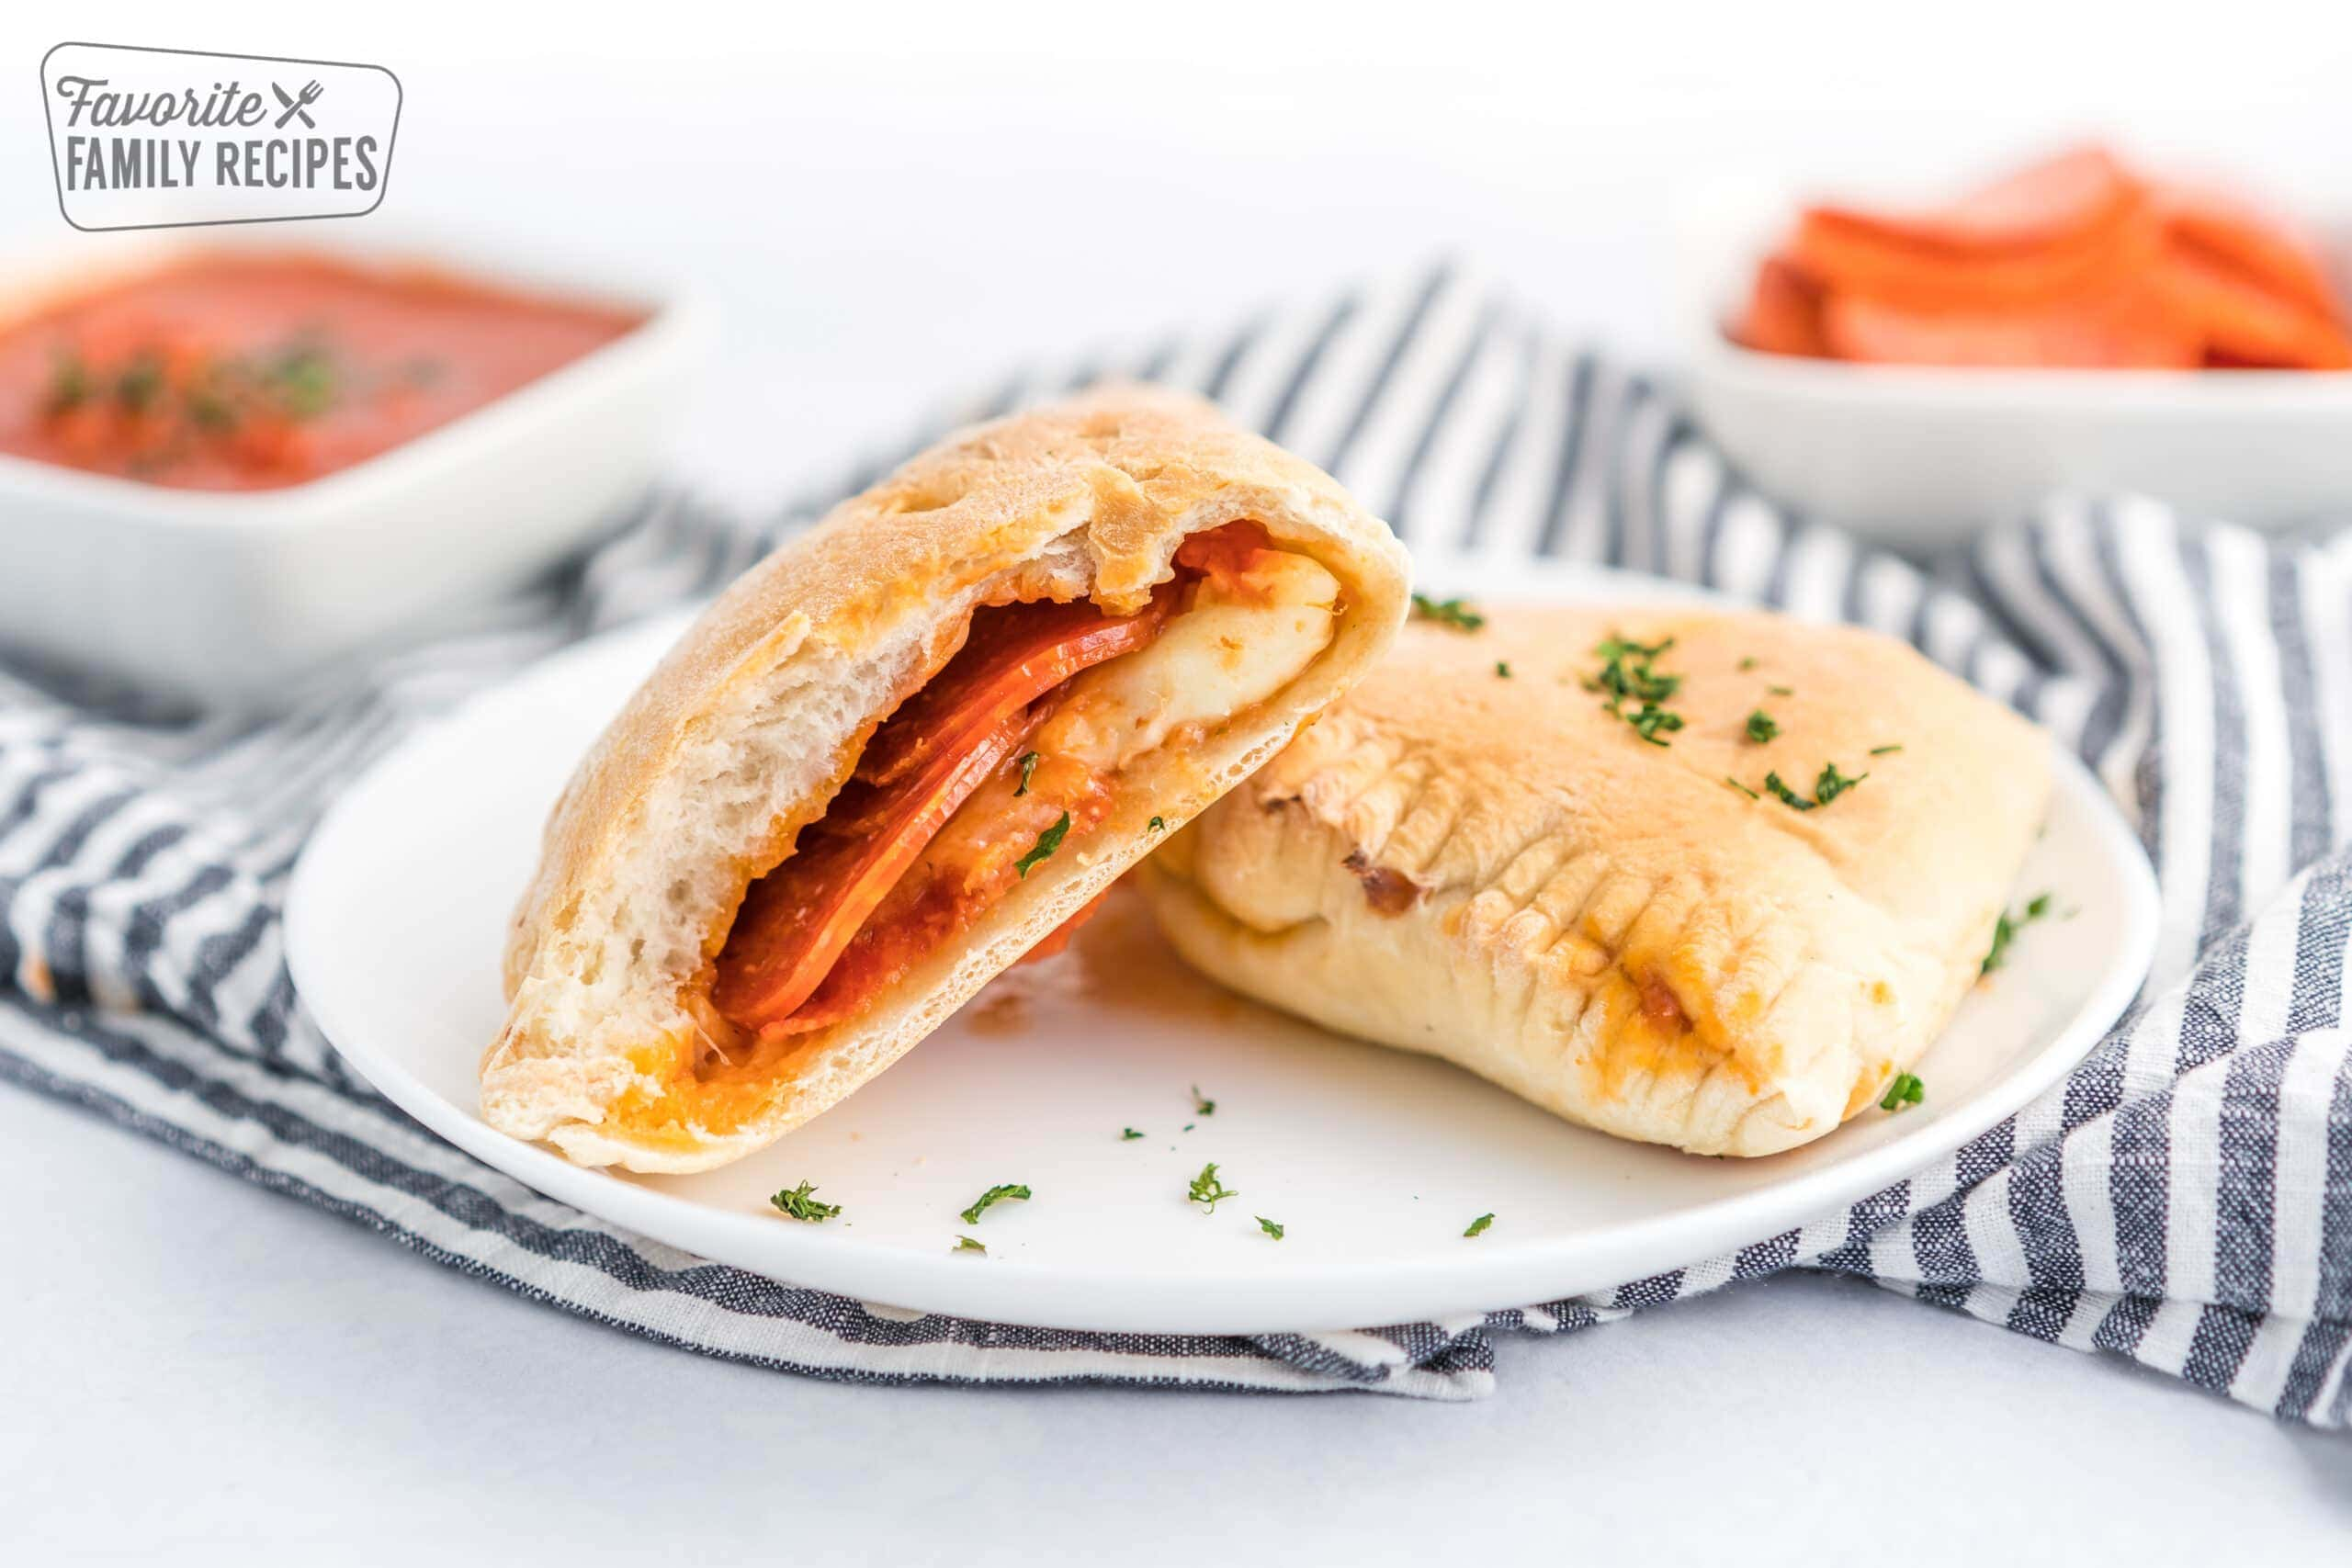 A pepperoni calzone cut in half on a white plate